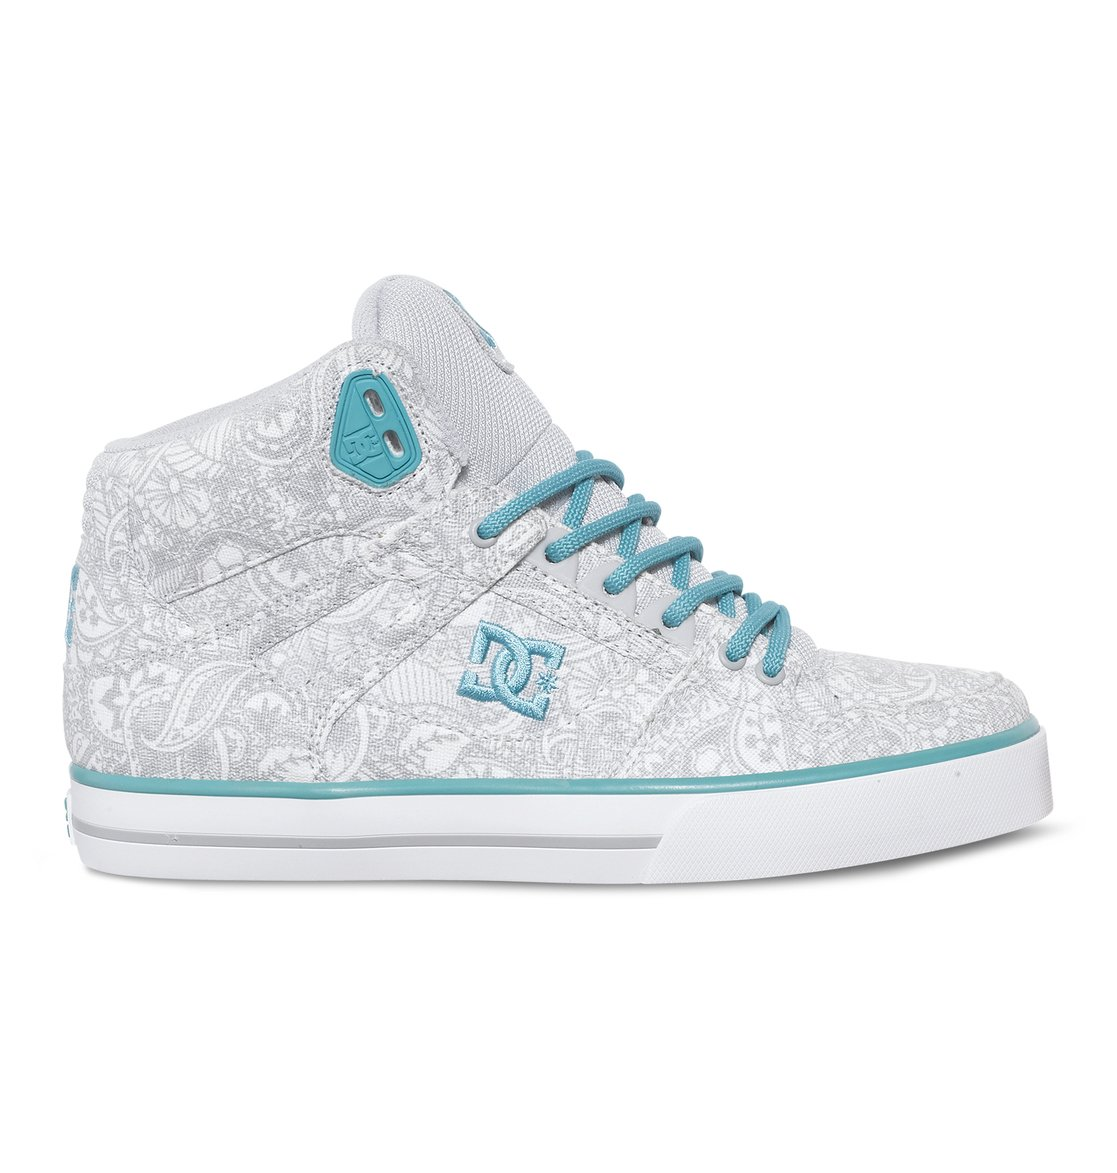 dc high top shoes womens - 53% OFF